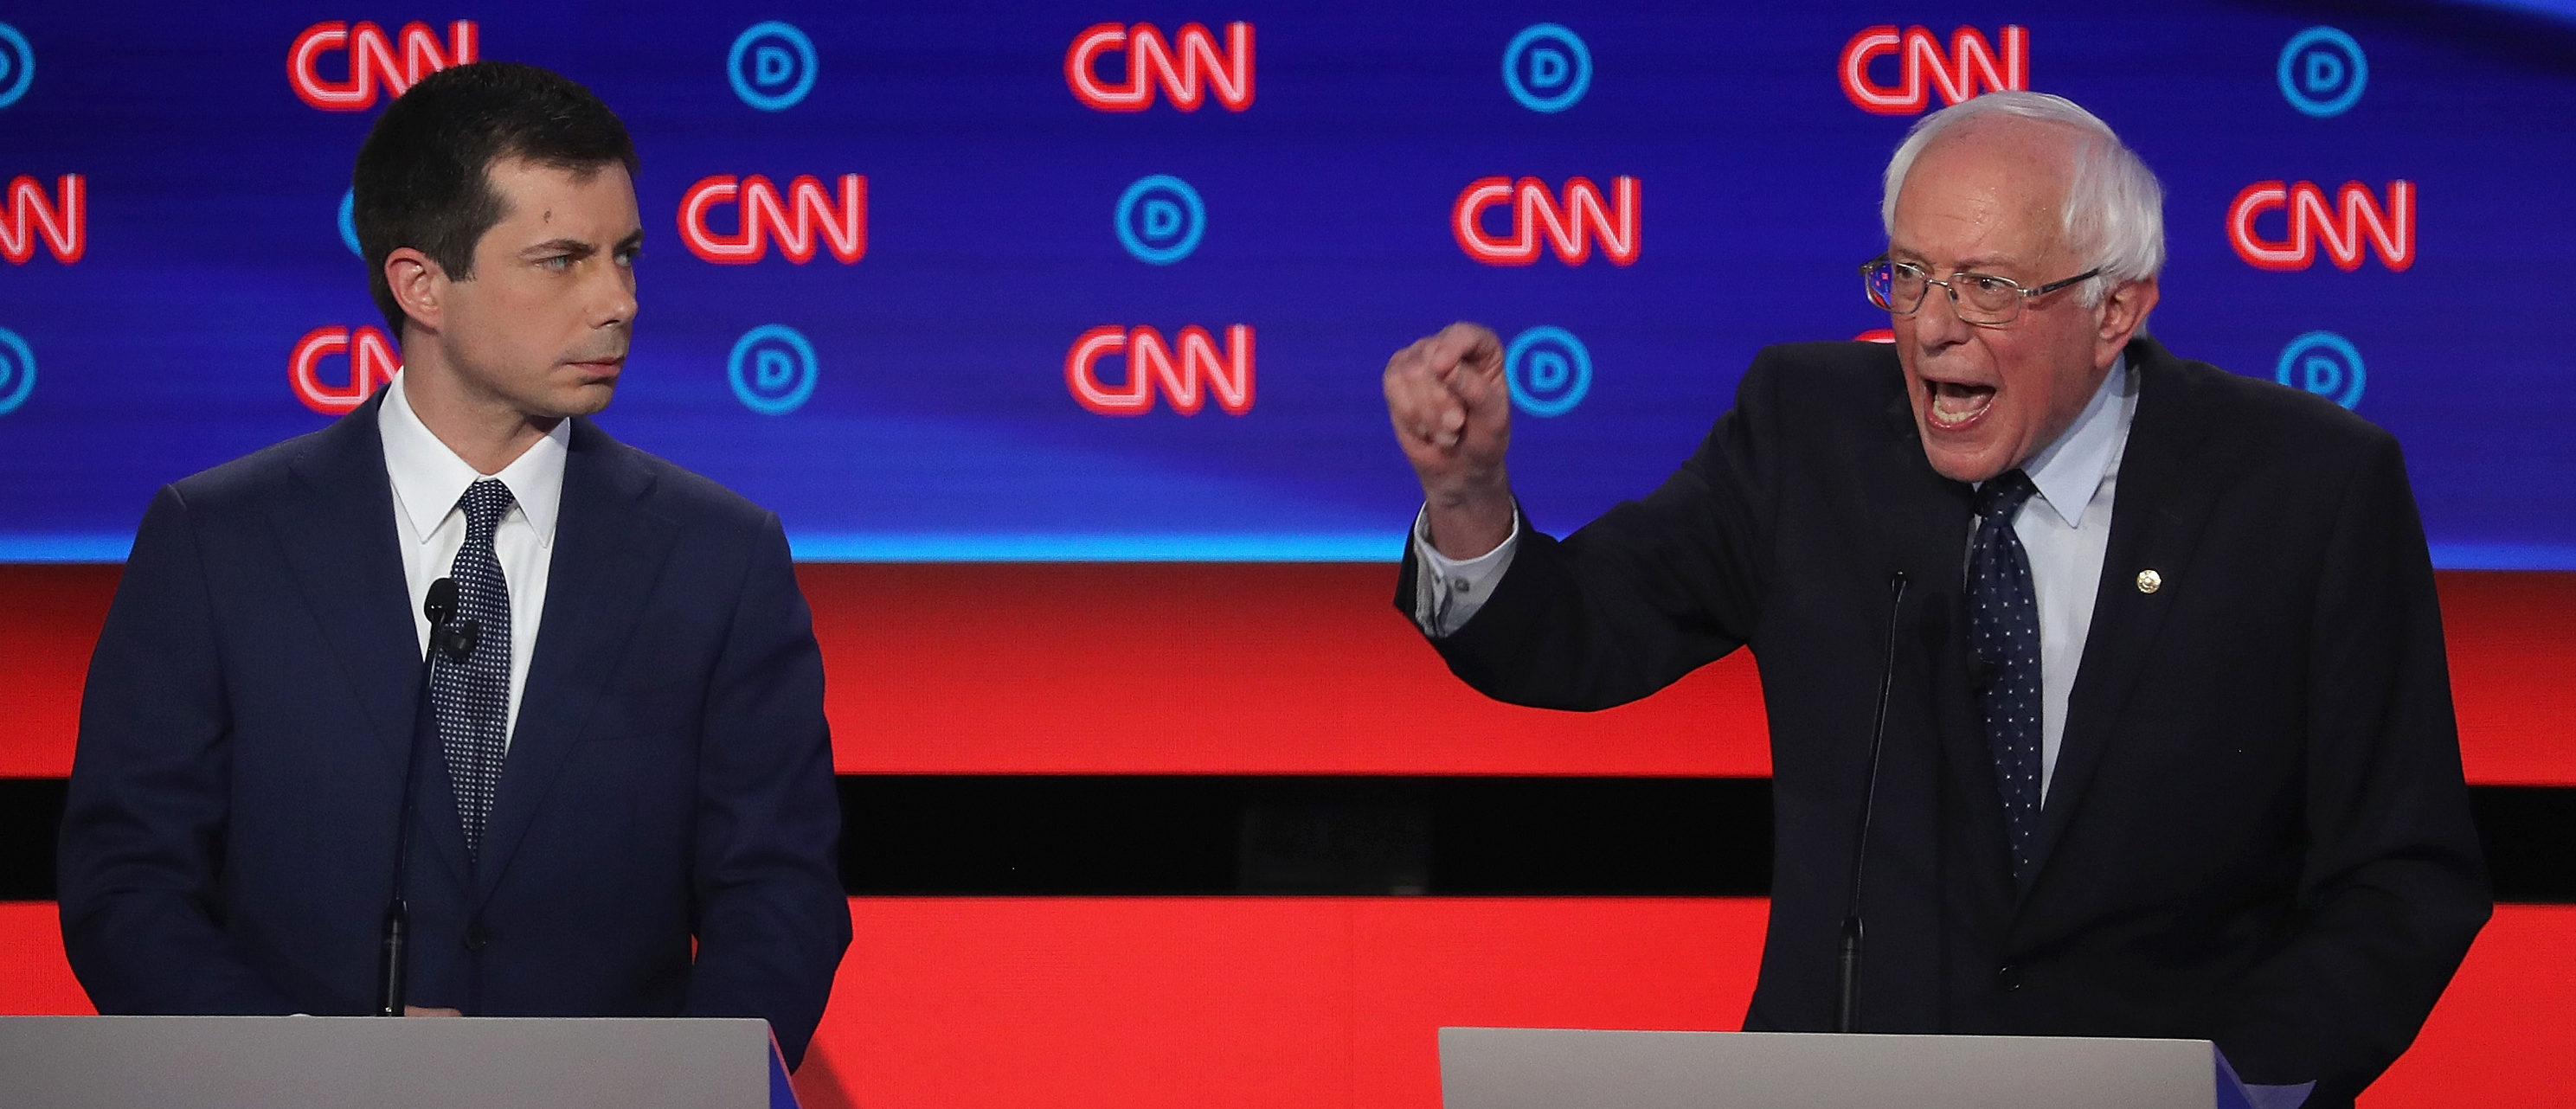 Democratic presidential candidate Sen. Bernie Sanders (I-VT) (R) speaks while South Bend, Indiana Mayor Pete Buttigieg listens during the Democratic Presidential Debate at the Fox Theatre July 30, 2019 in Detroit, Michigan. (Justin Sullivan/Getty Images)